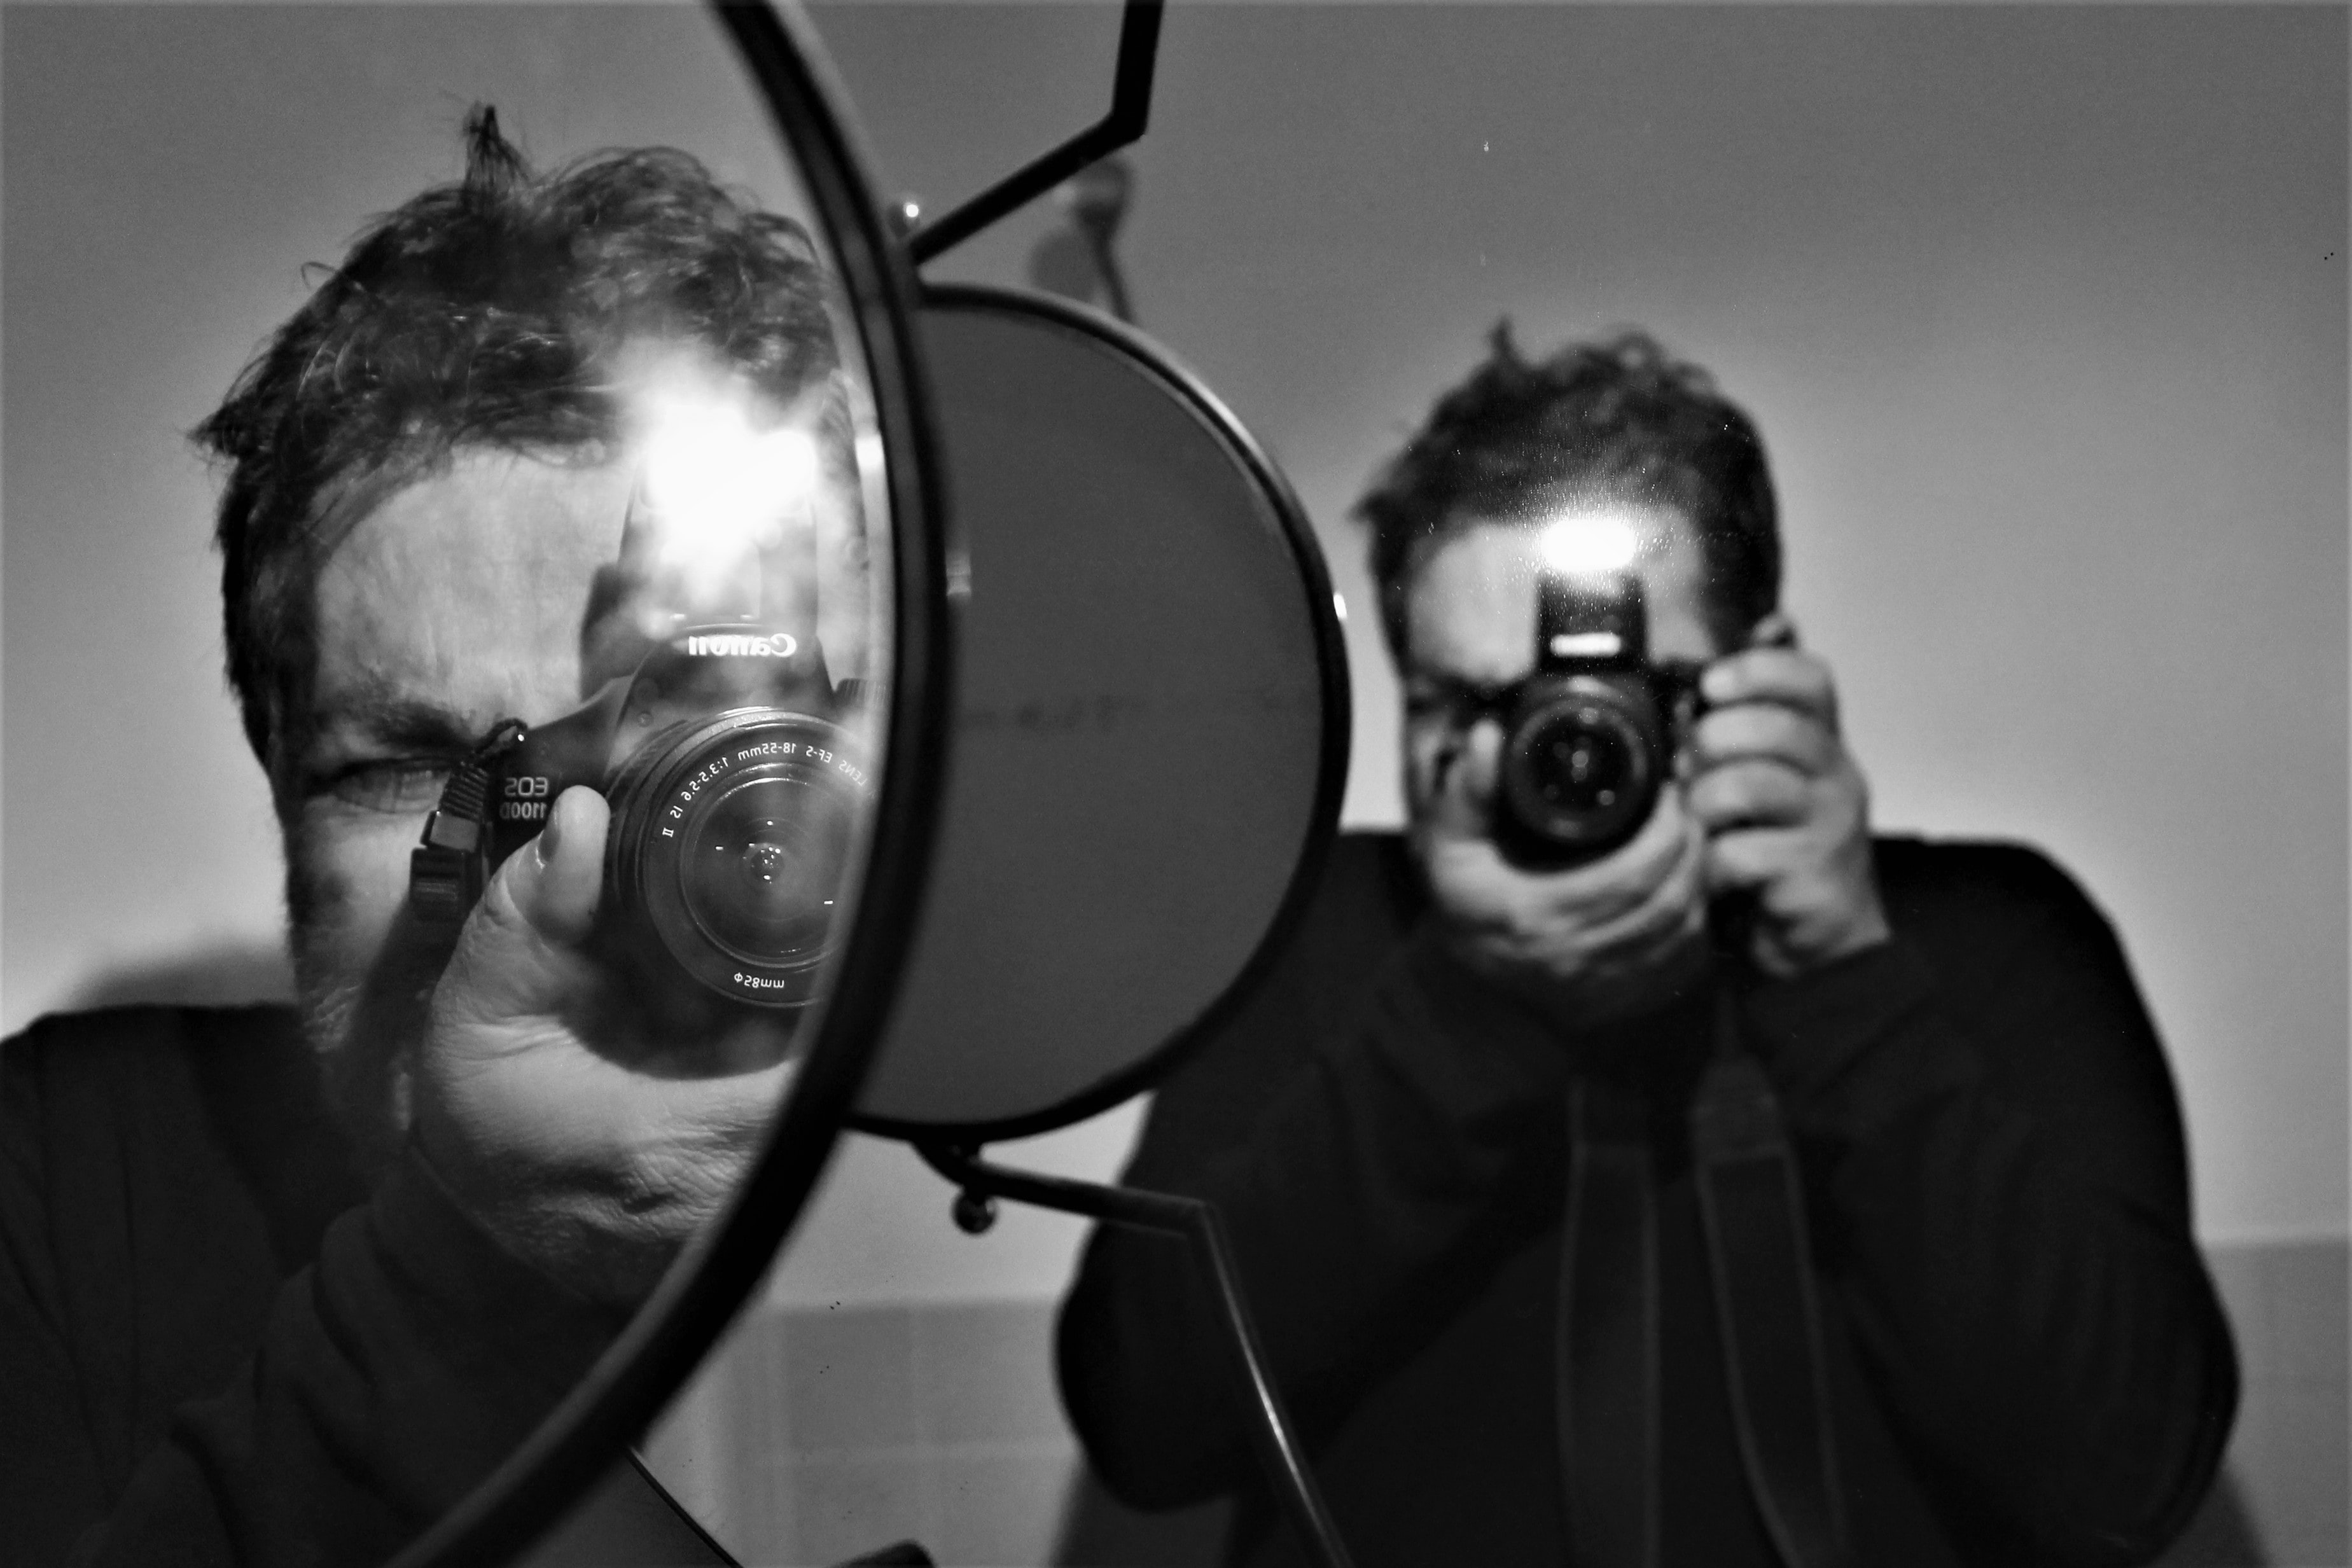 grayscale photography of man holding DSLR camera